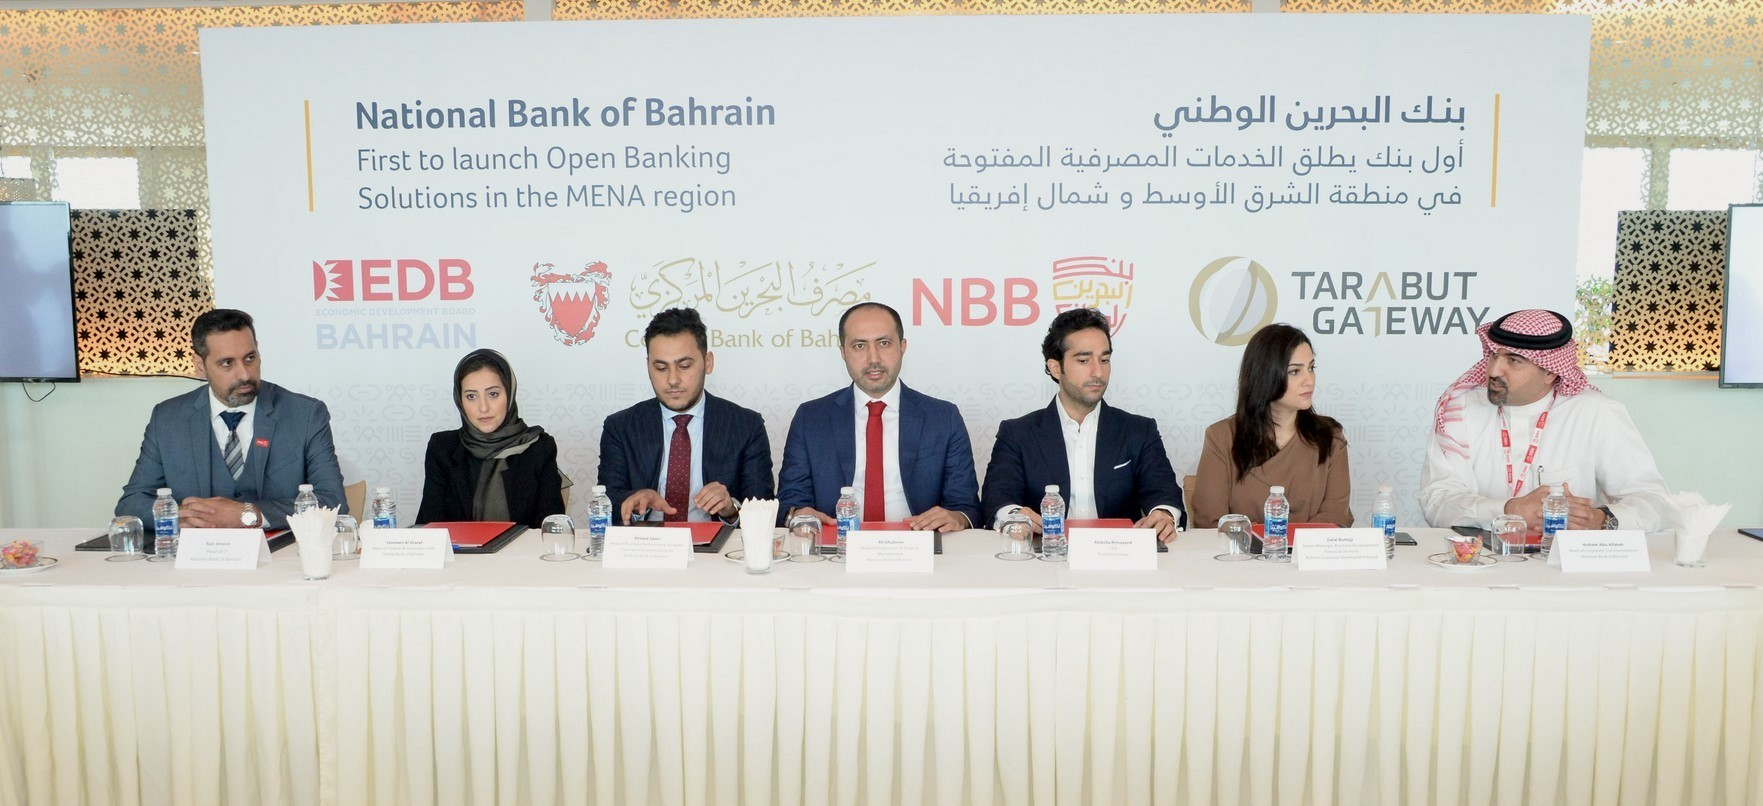 National Bank of Bahrain becomes first in the region to offer Open Banking solutions